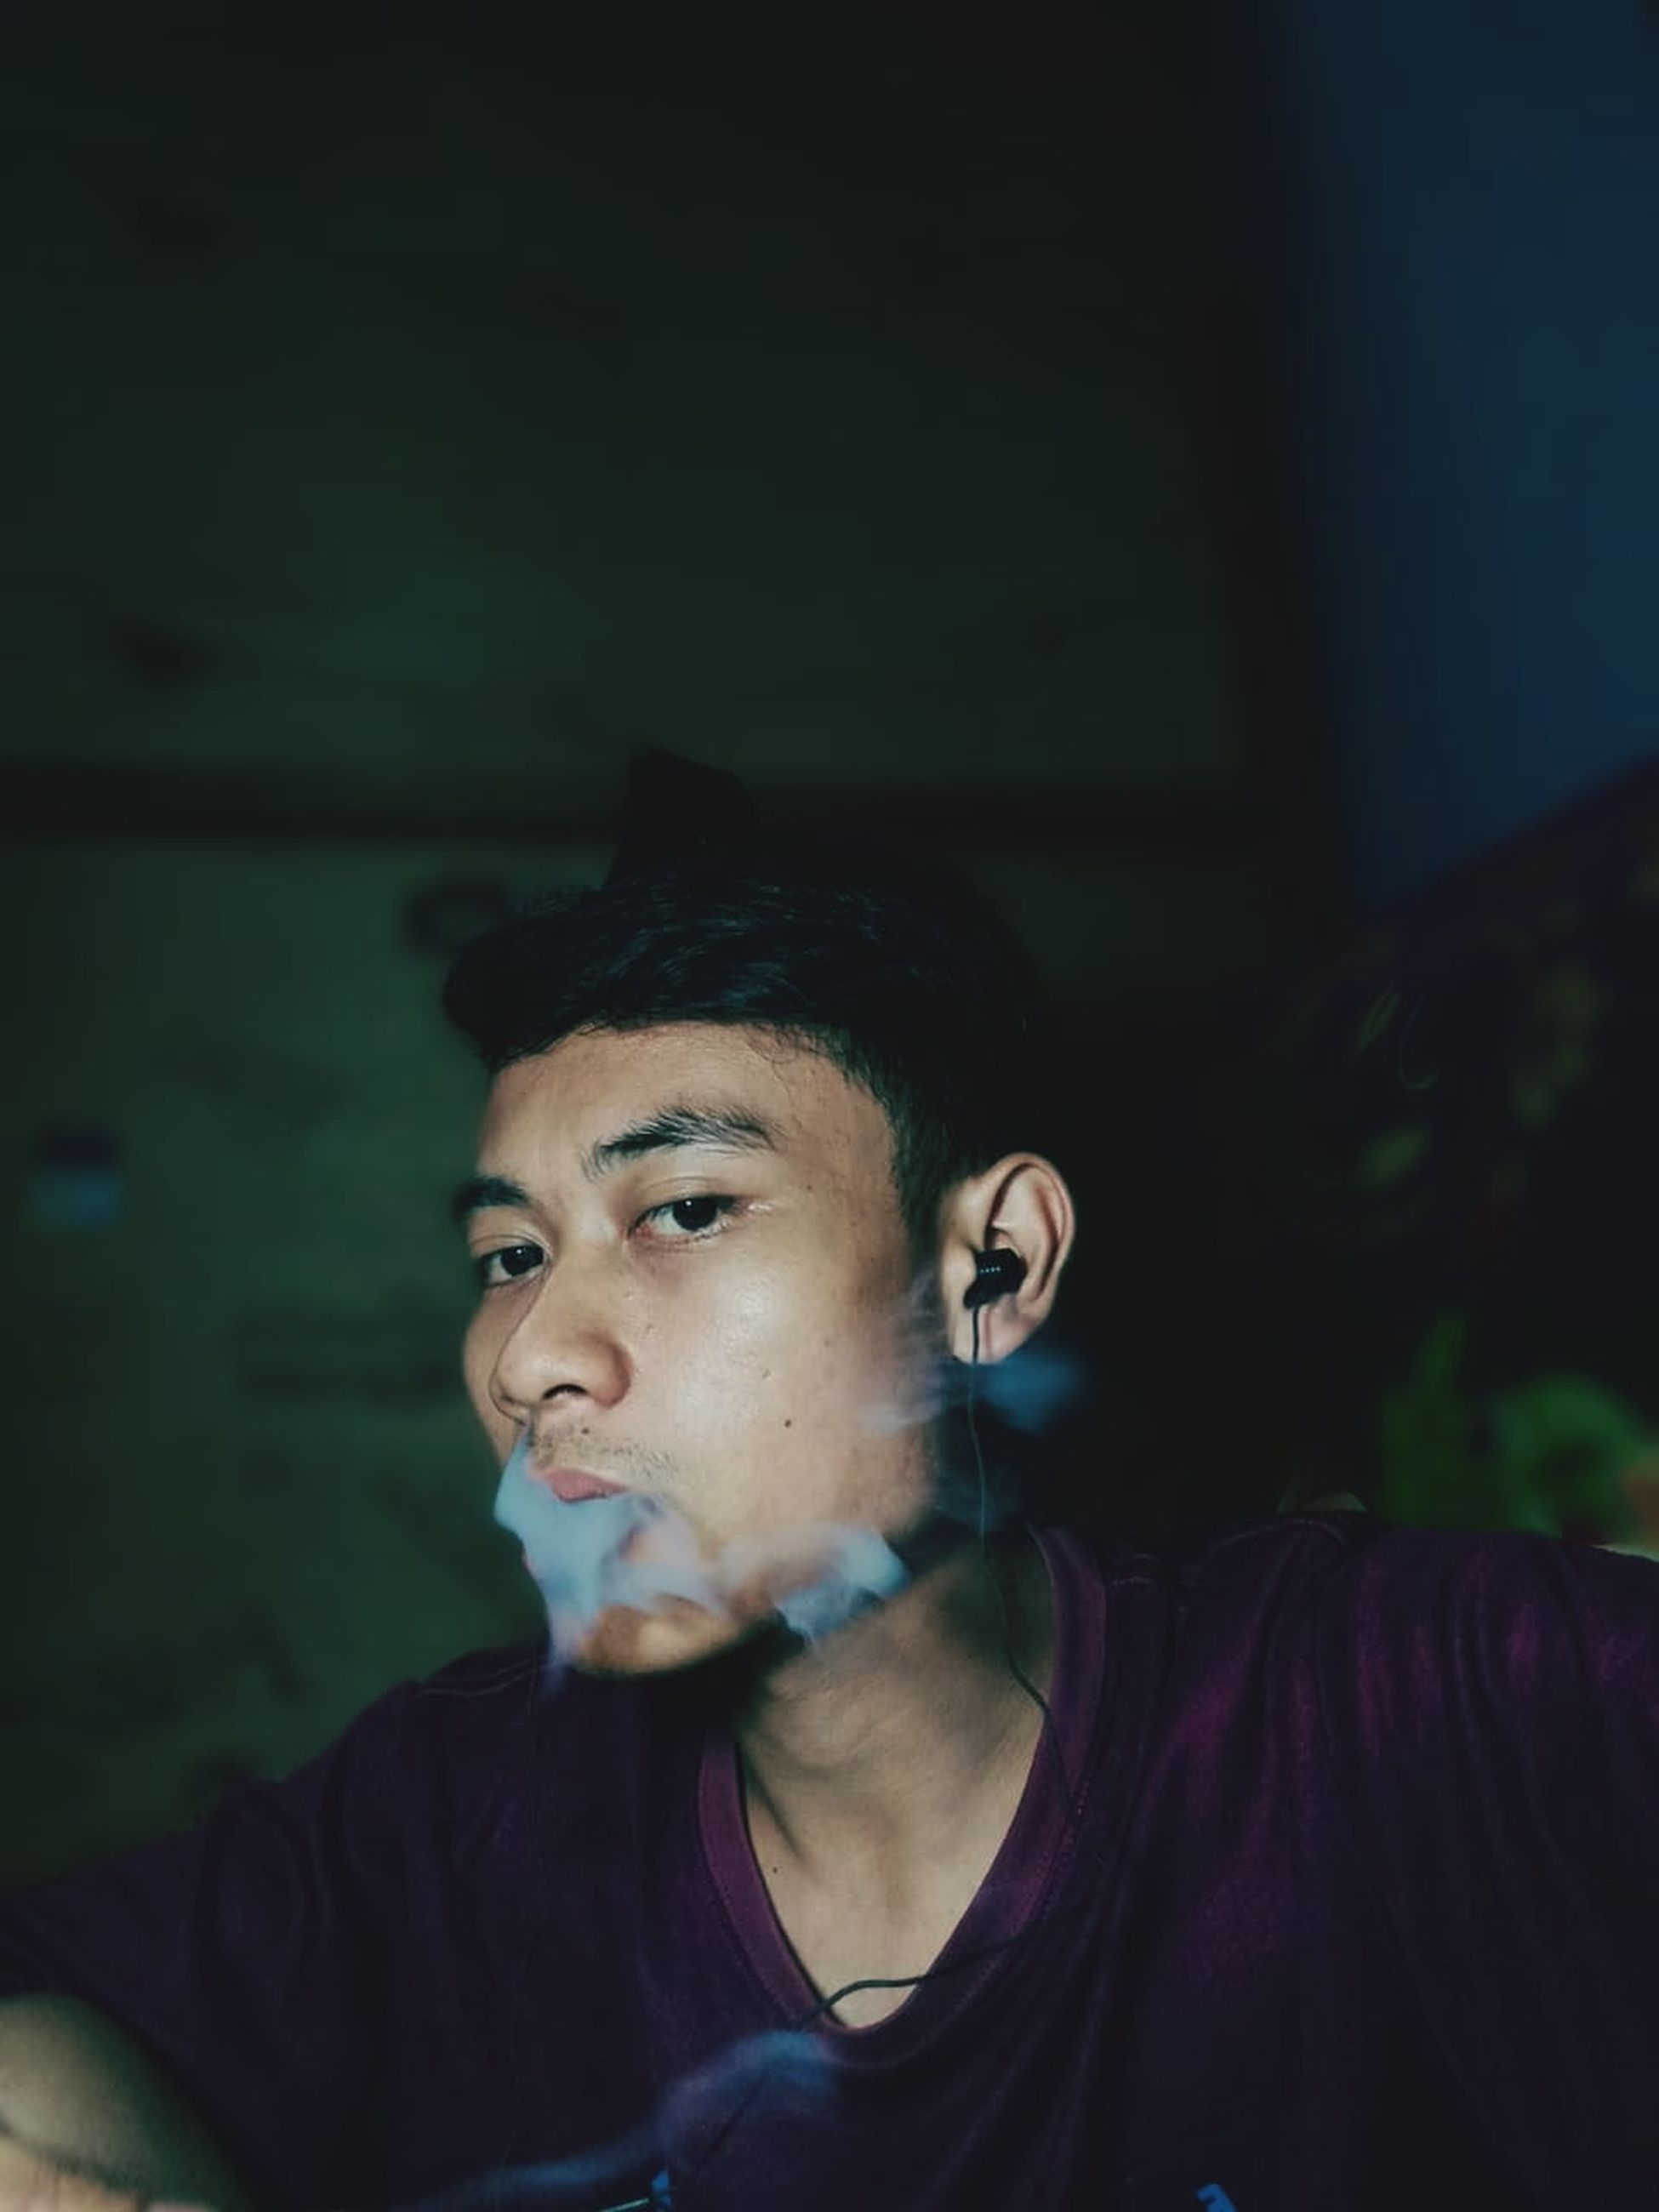 headshot, portrait, one person, young men, young adult, real people, front view, lifestyles, leisure activity, looking, looking at camera, indoors, casual clothing, focus on foreground, contemplation, serious